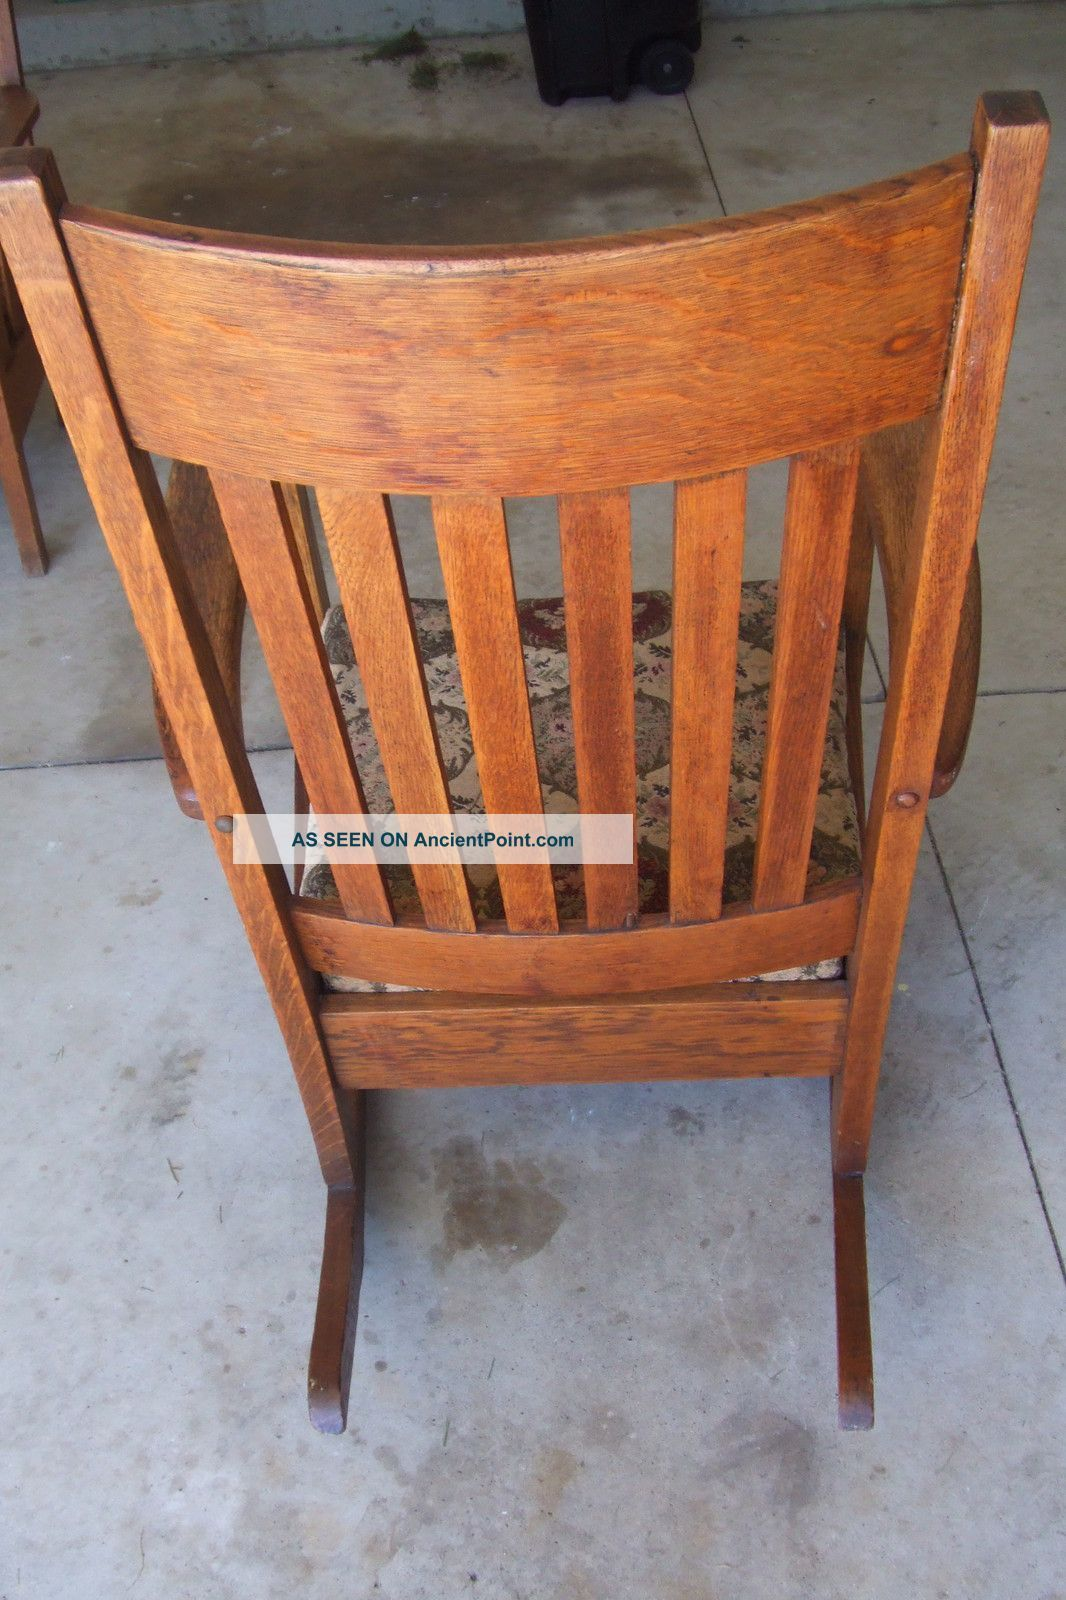 antique rocking chairs 1900\'s images of early 1900 furniture | Antique Mission Rocking Chair  antique rocking chairs 1900\'s